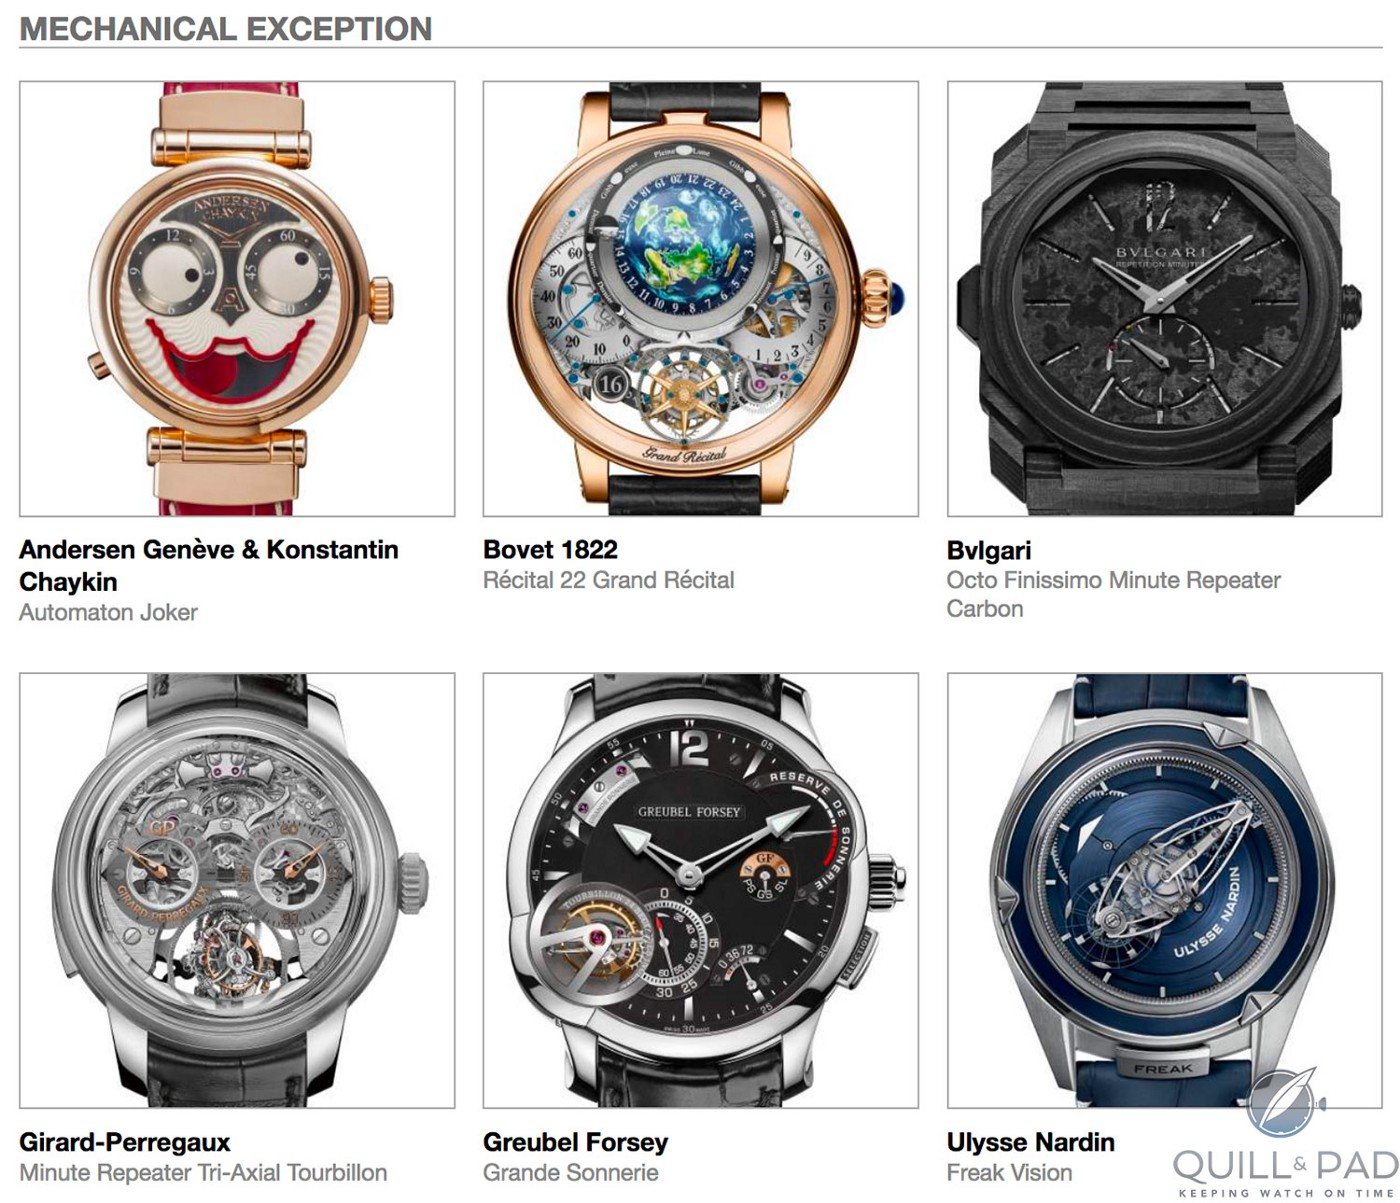 Mechanical-Exception category pre-selected watches for the 2018 Grand Prix d'Horlogerie de Genève, clockwise from top left: Andersen Genève & Konstantin Chaykin Automaton Joker, Bovet 1822 Récital 22 Grand Récital, Bulgari Octo Finissimo Minute Repeater Carbon, Girard-Perregaux Minute Repeater Tri-Axial Tourbillon, Greubel Forsey Grande Sonnerie, and Ulysse Nardin Freak Vision